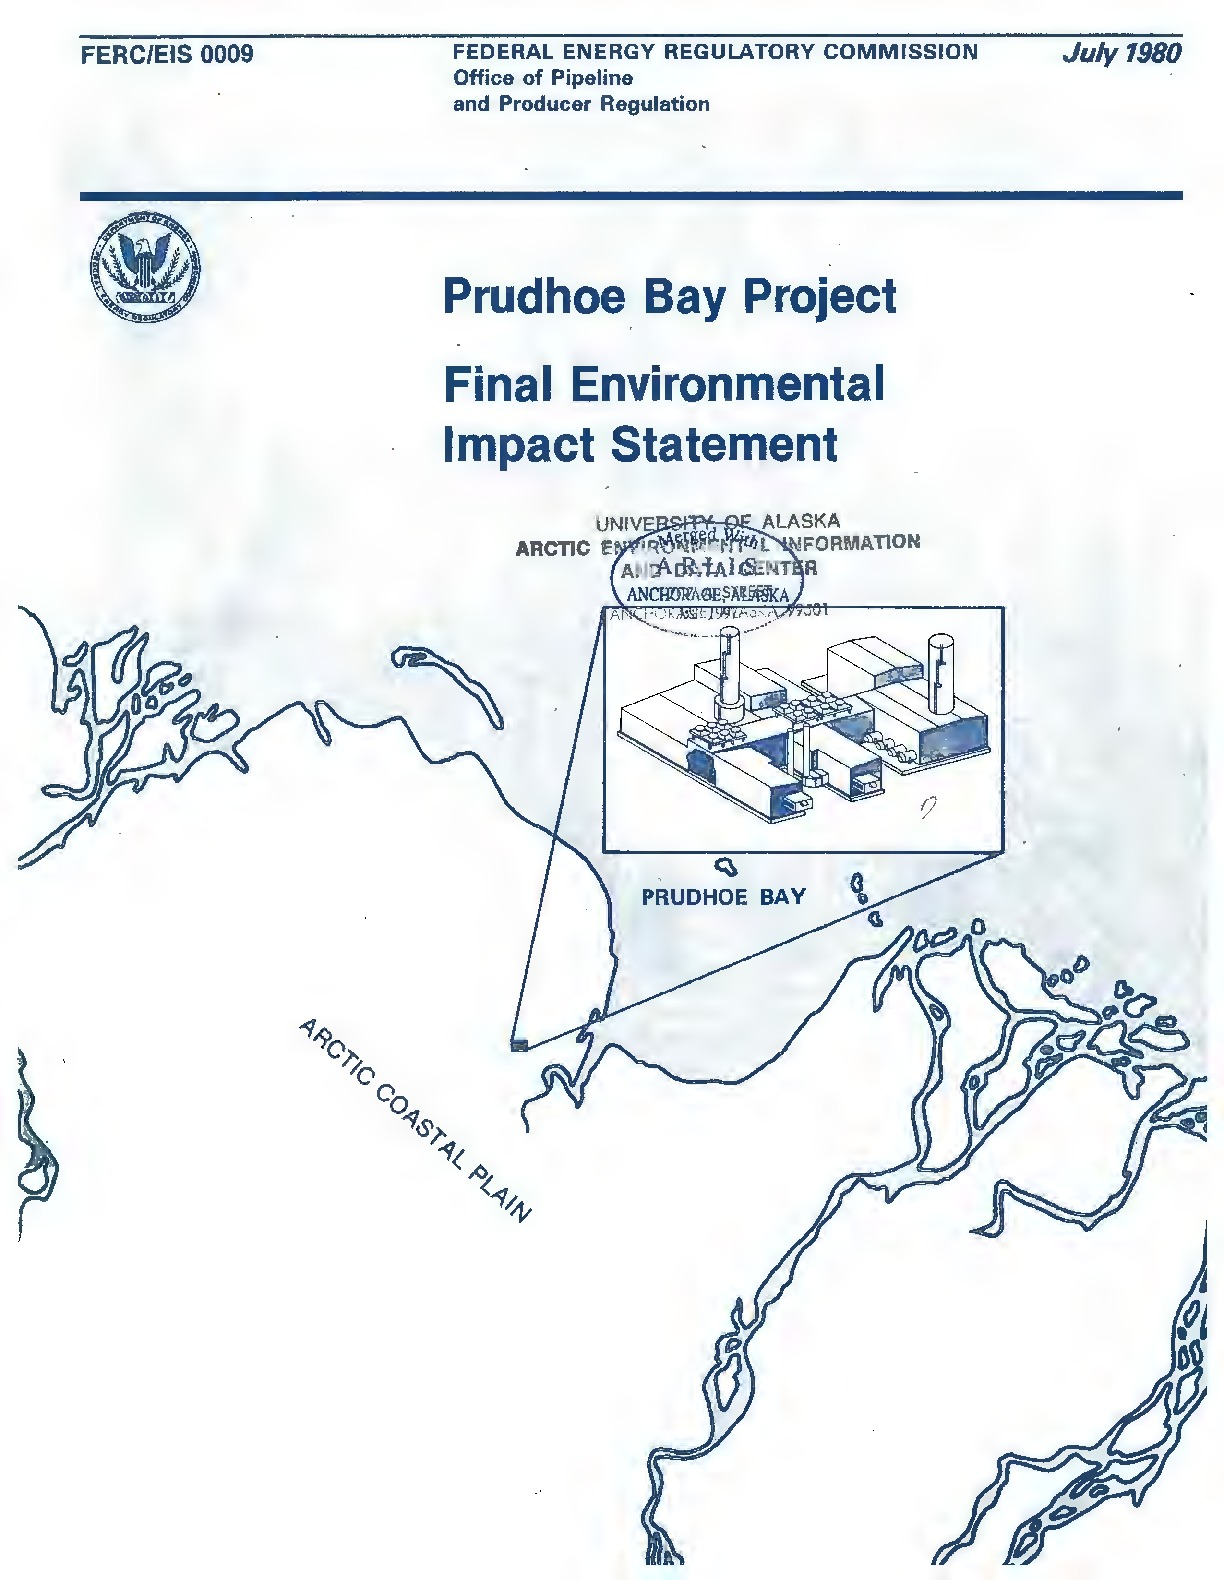 Description: Prudhoe Bay project final environmental impact